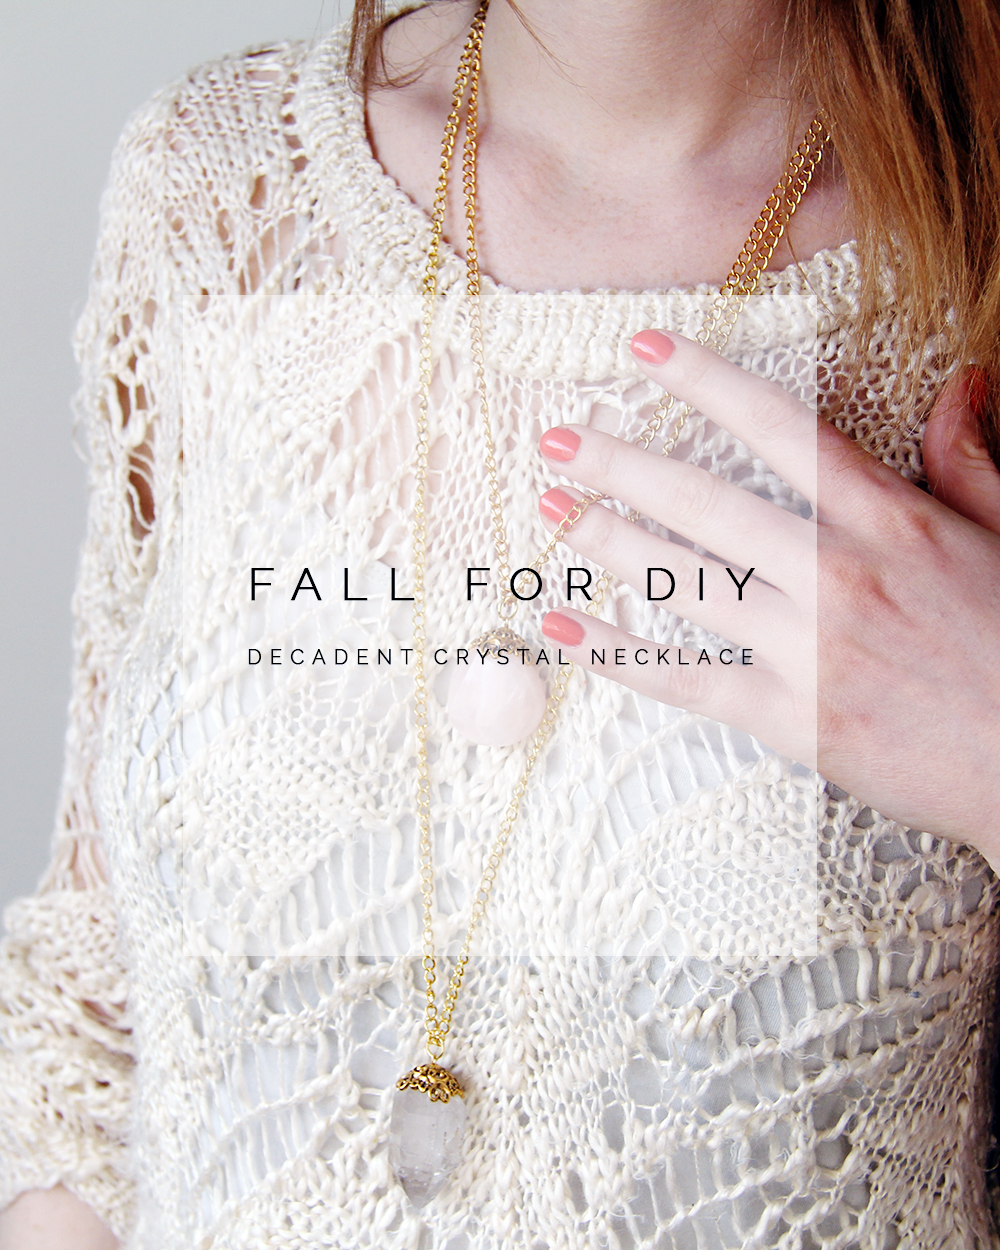 Fall For DIY Decadent Crystal Necklaces